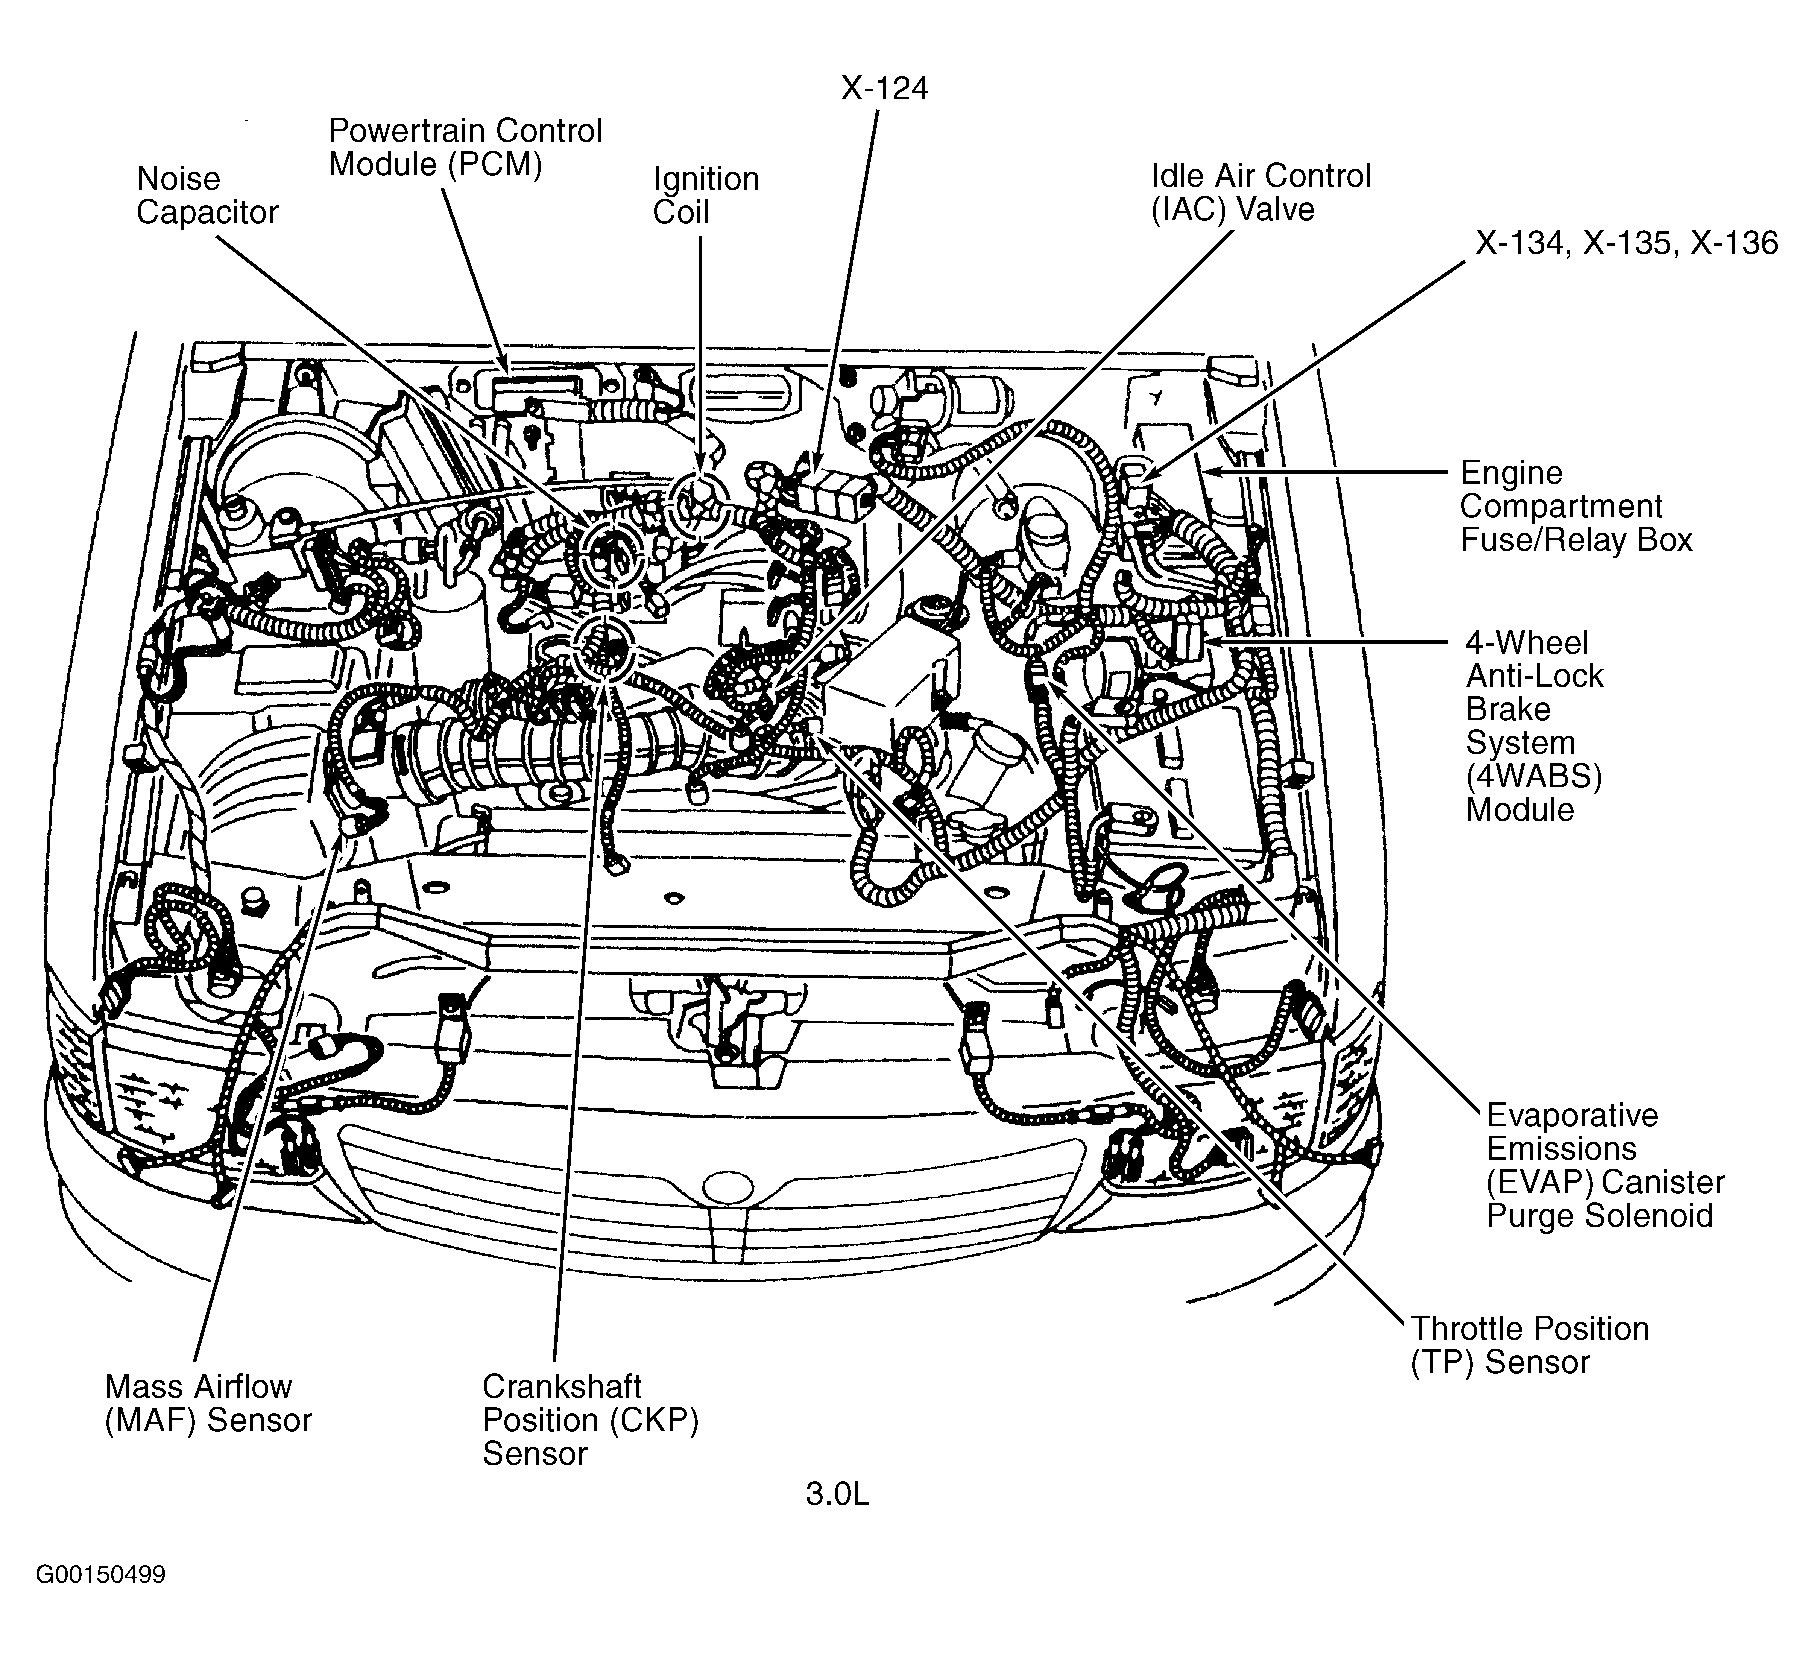 Unique Wiring Diagram For Bmw E46 Radio Ford Ranger Mazda Diagram